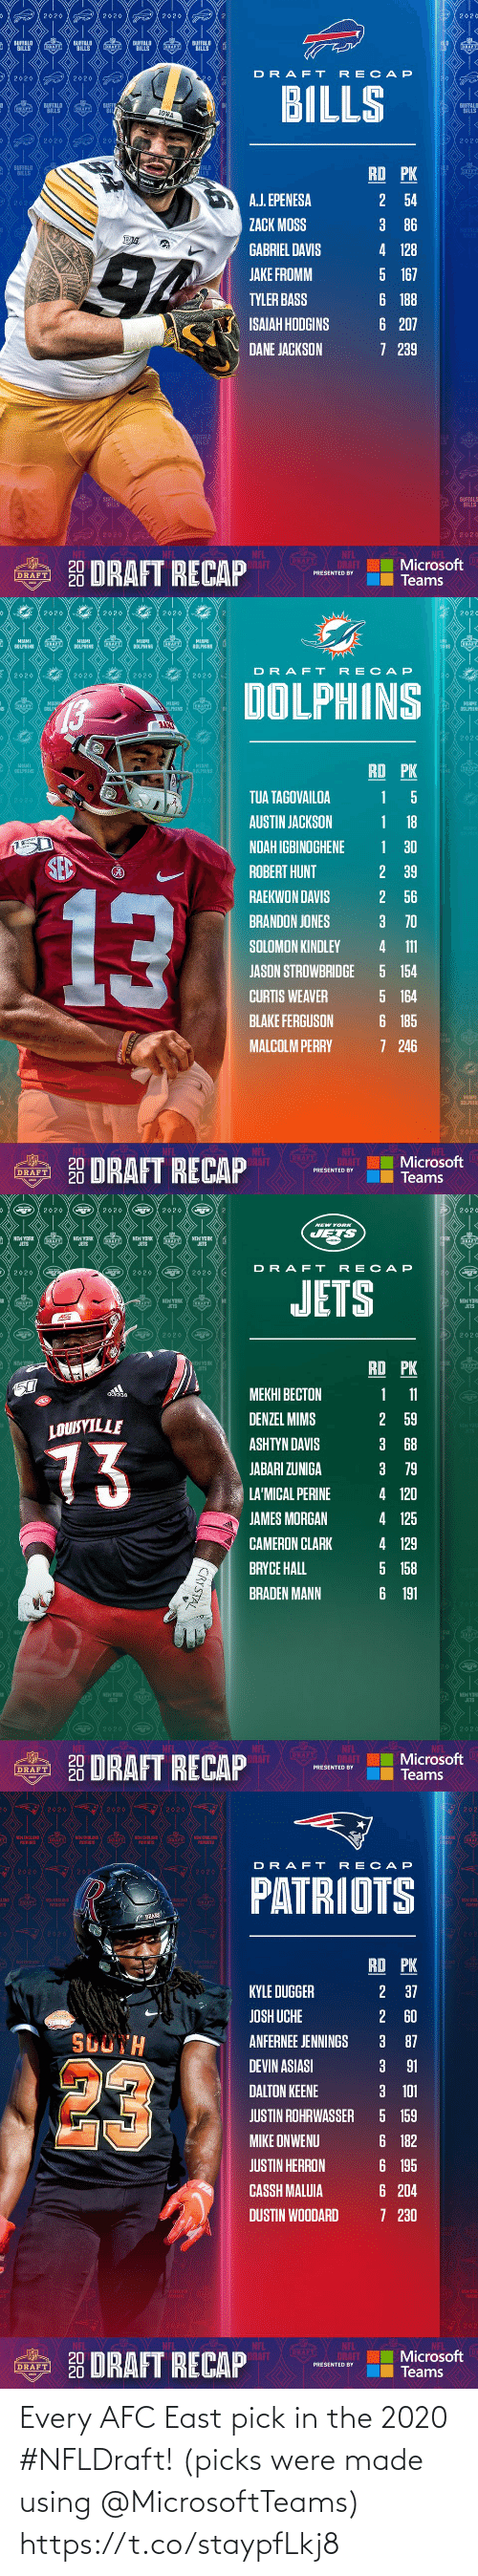 east: Every AFC East pick in the 2020 #NFLDraft! (picks were made using @MicrosoftTeams) https://t.co/staypfLkj8